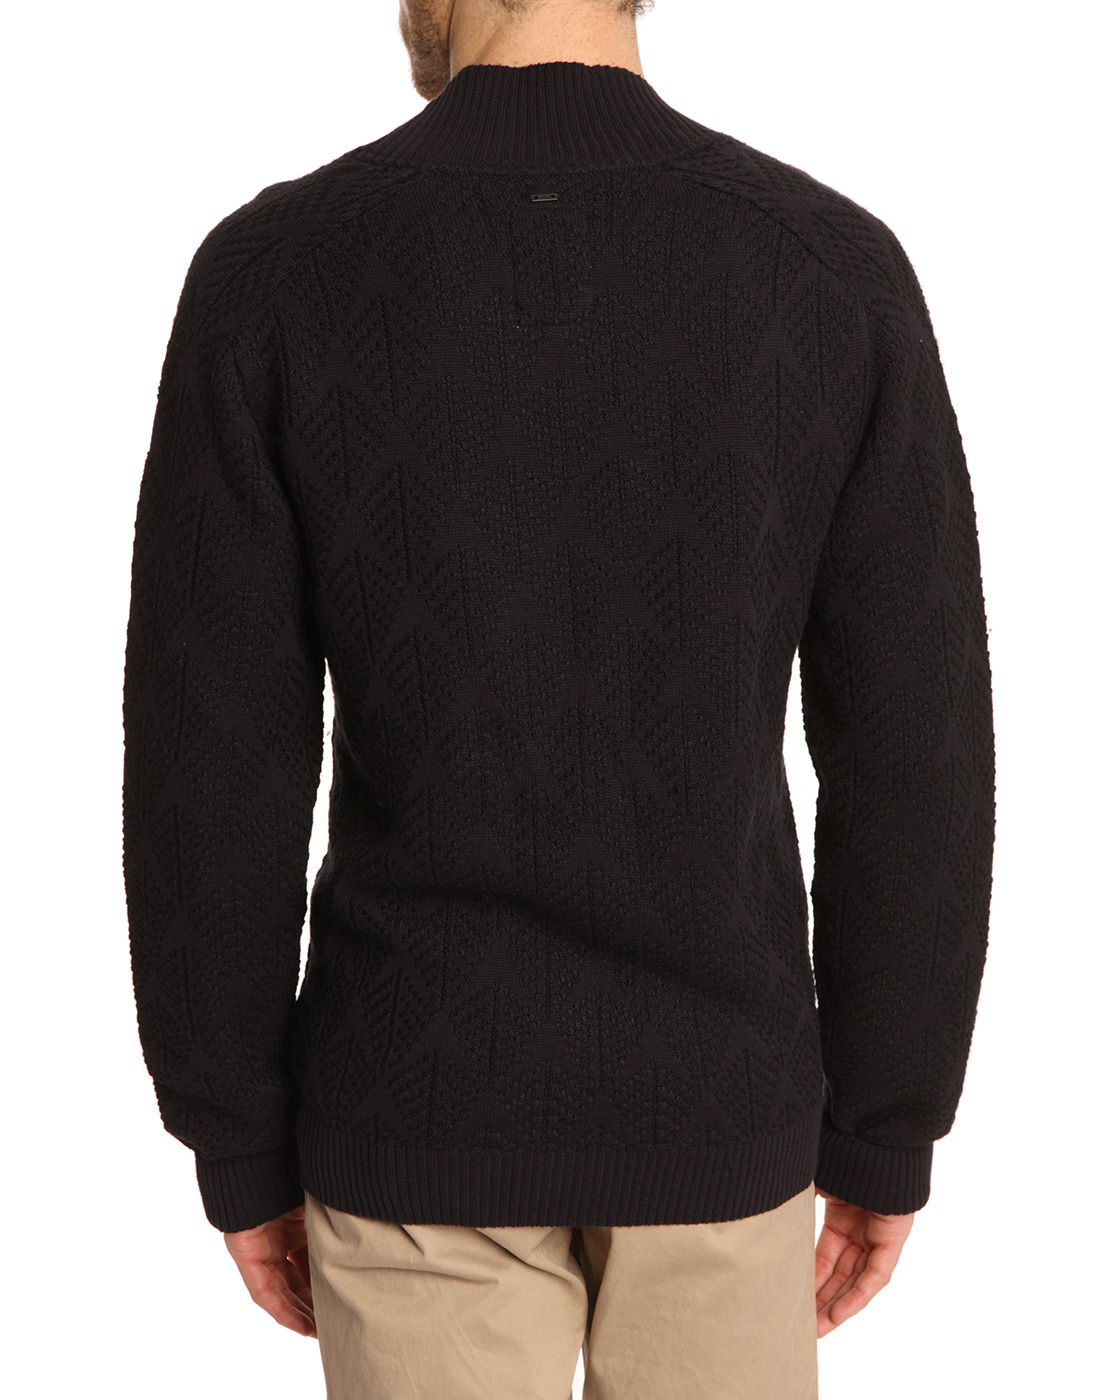 g star raw cardigan sale cardigan with buttons. Black Bedroom Furniture Sets. Home Design Ideas